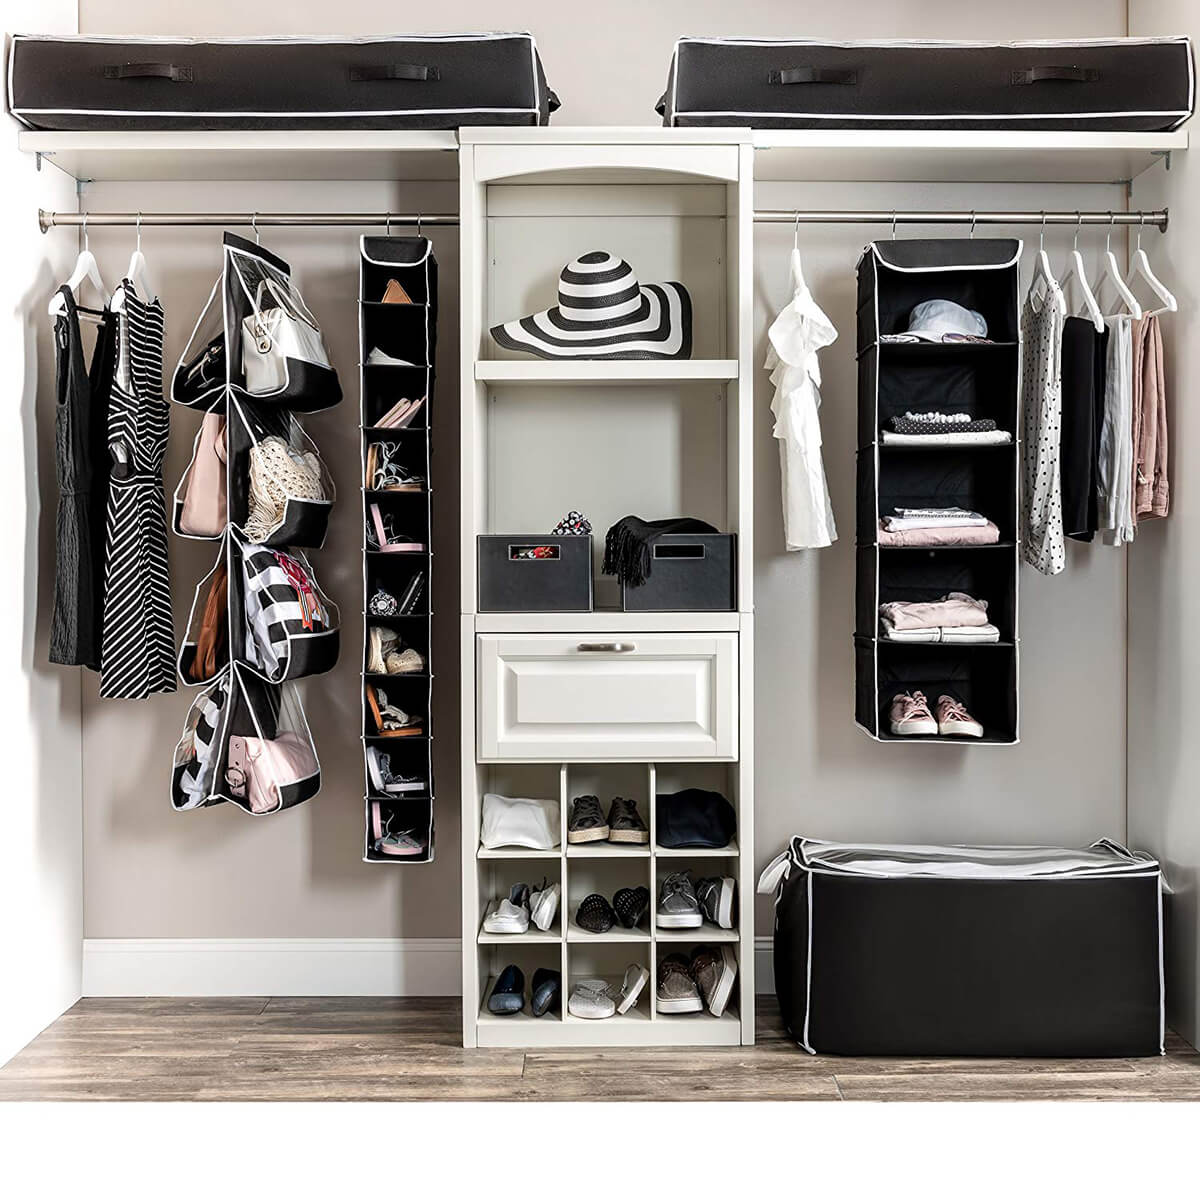 26 Best Closet Organizers That Will Improve Your Home In 2020